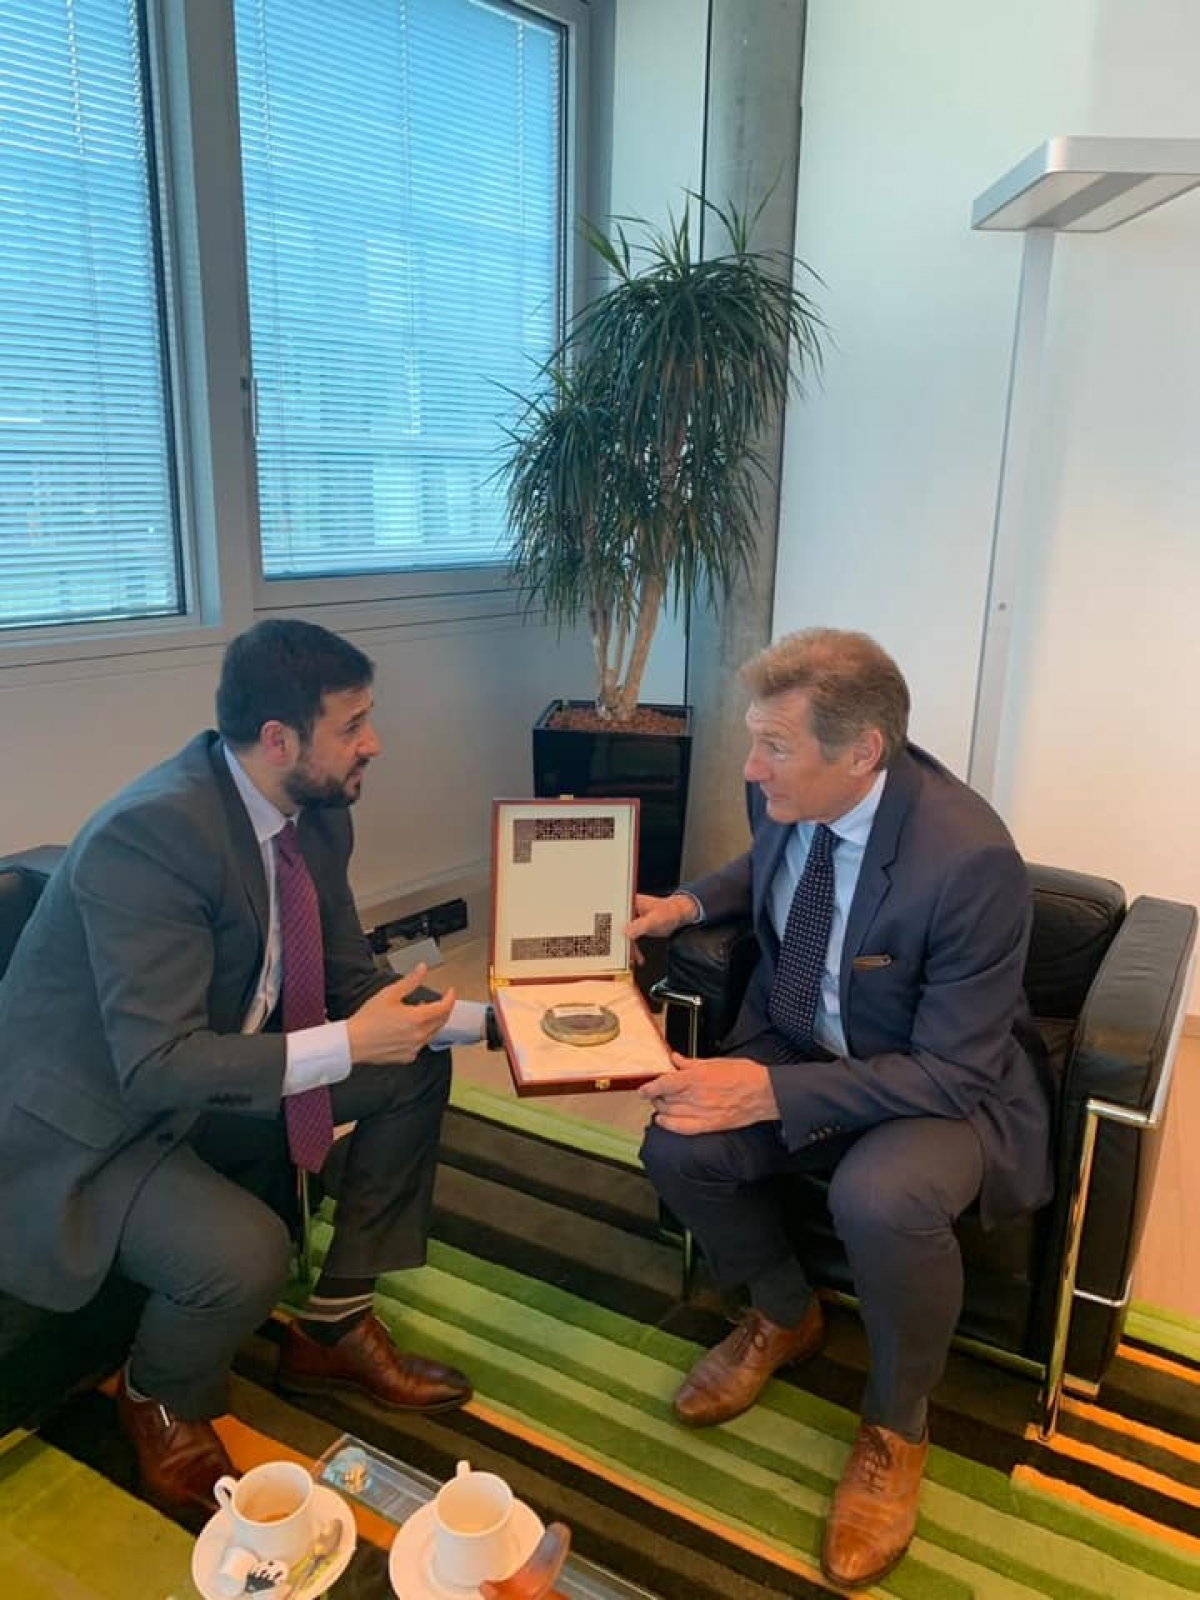 The Permanent Representative of the I.R of Afghanistan to the UNOG, Ambassador Nasir Ahmad Andisha had a meeting with the head of the EU delegation to the United Nations in Geneva, Ambassador, Walter Stevens